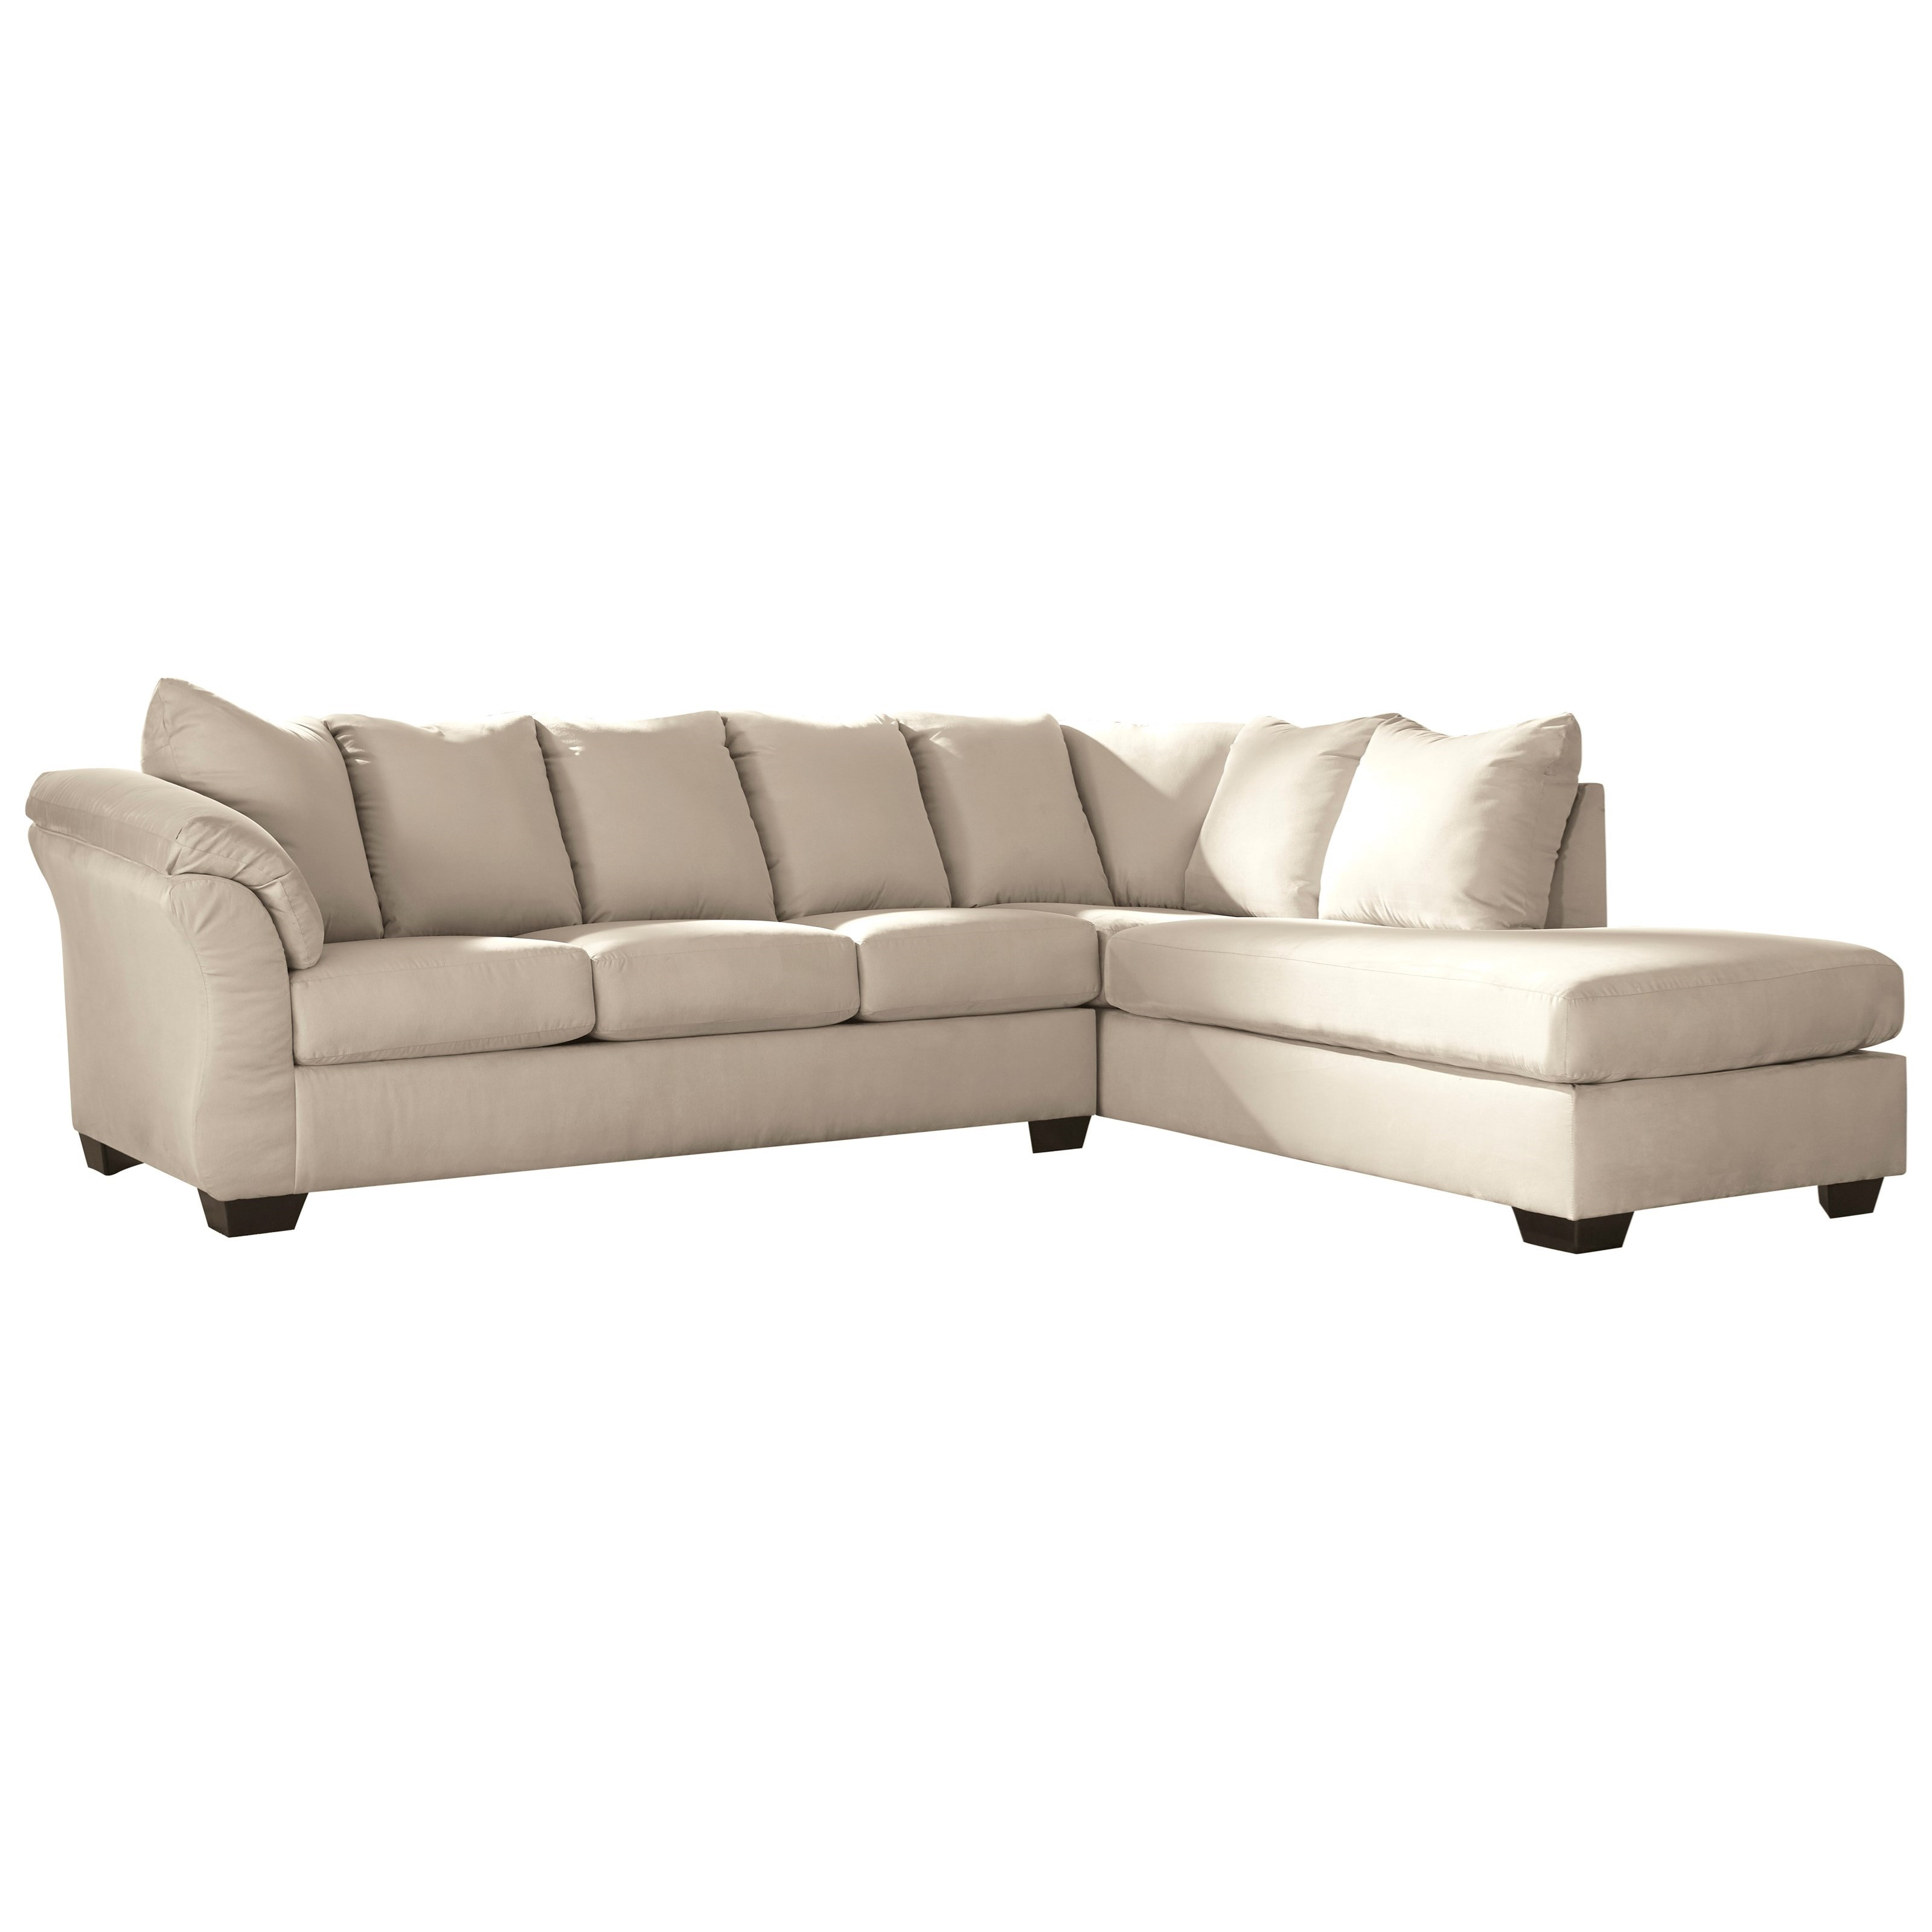 Sectional Sofas By Ashley Furniture: Contemporary 2-Piece Sectional Sofa With Right Chaise By